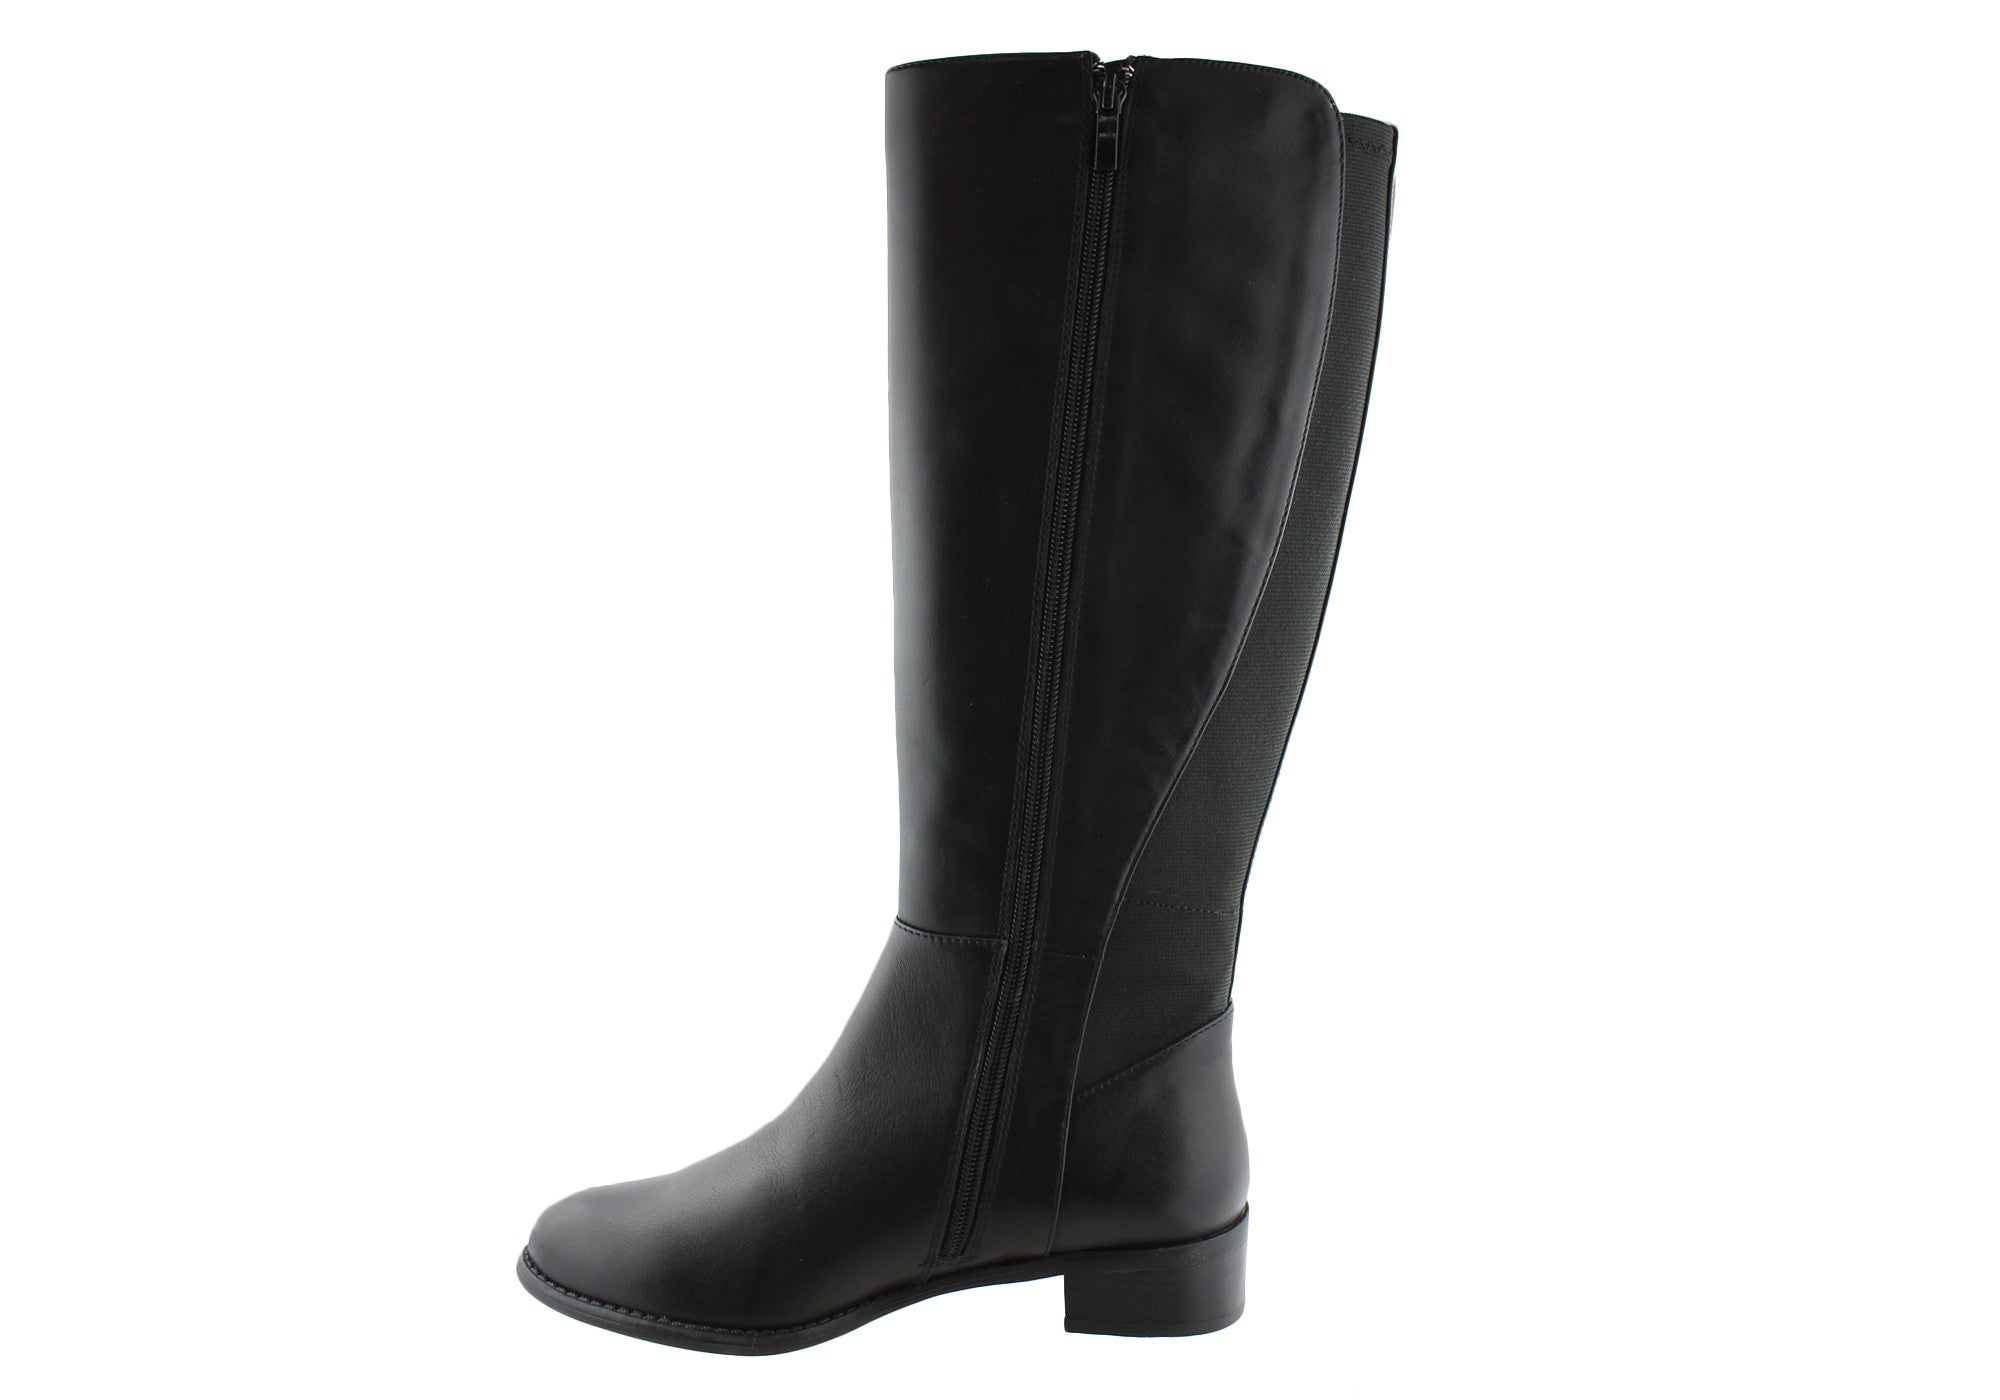 c3a36498bee Details about Hush Puppies Yarra Womens Leather Knee High Boots